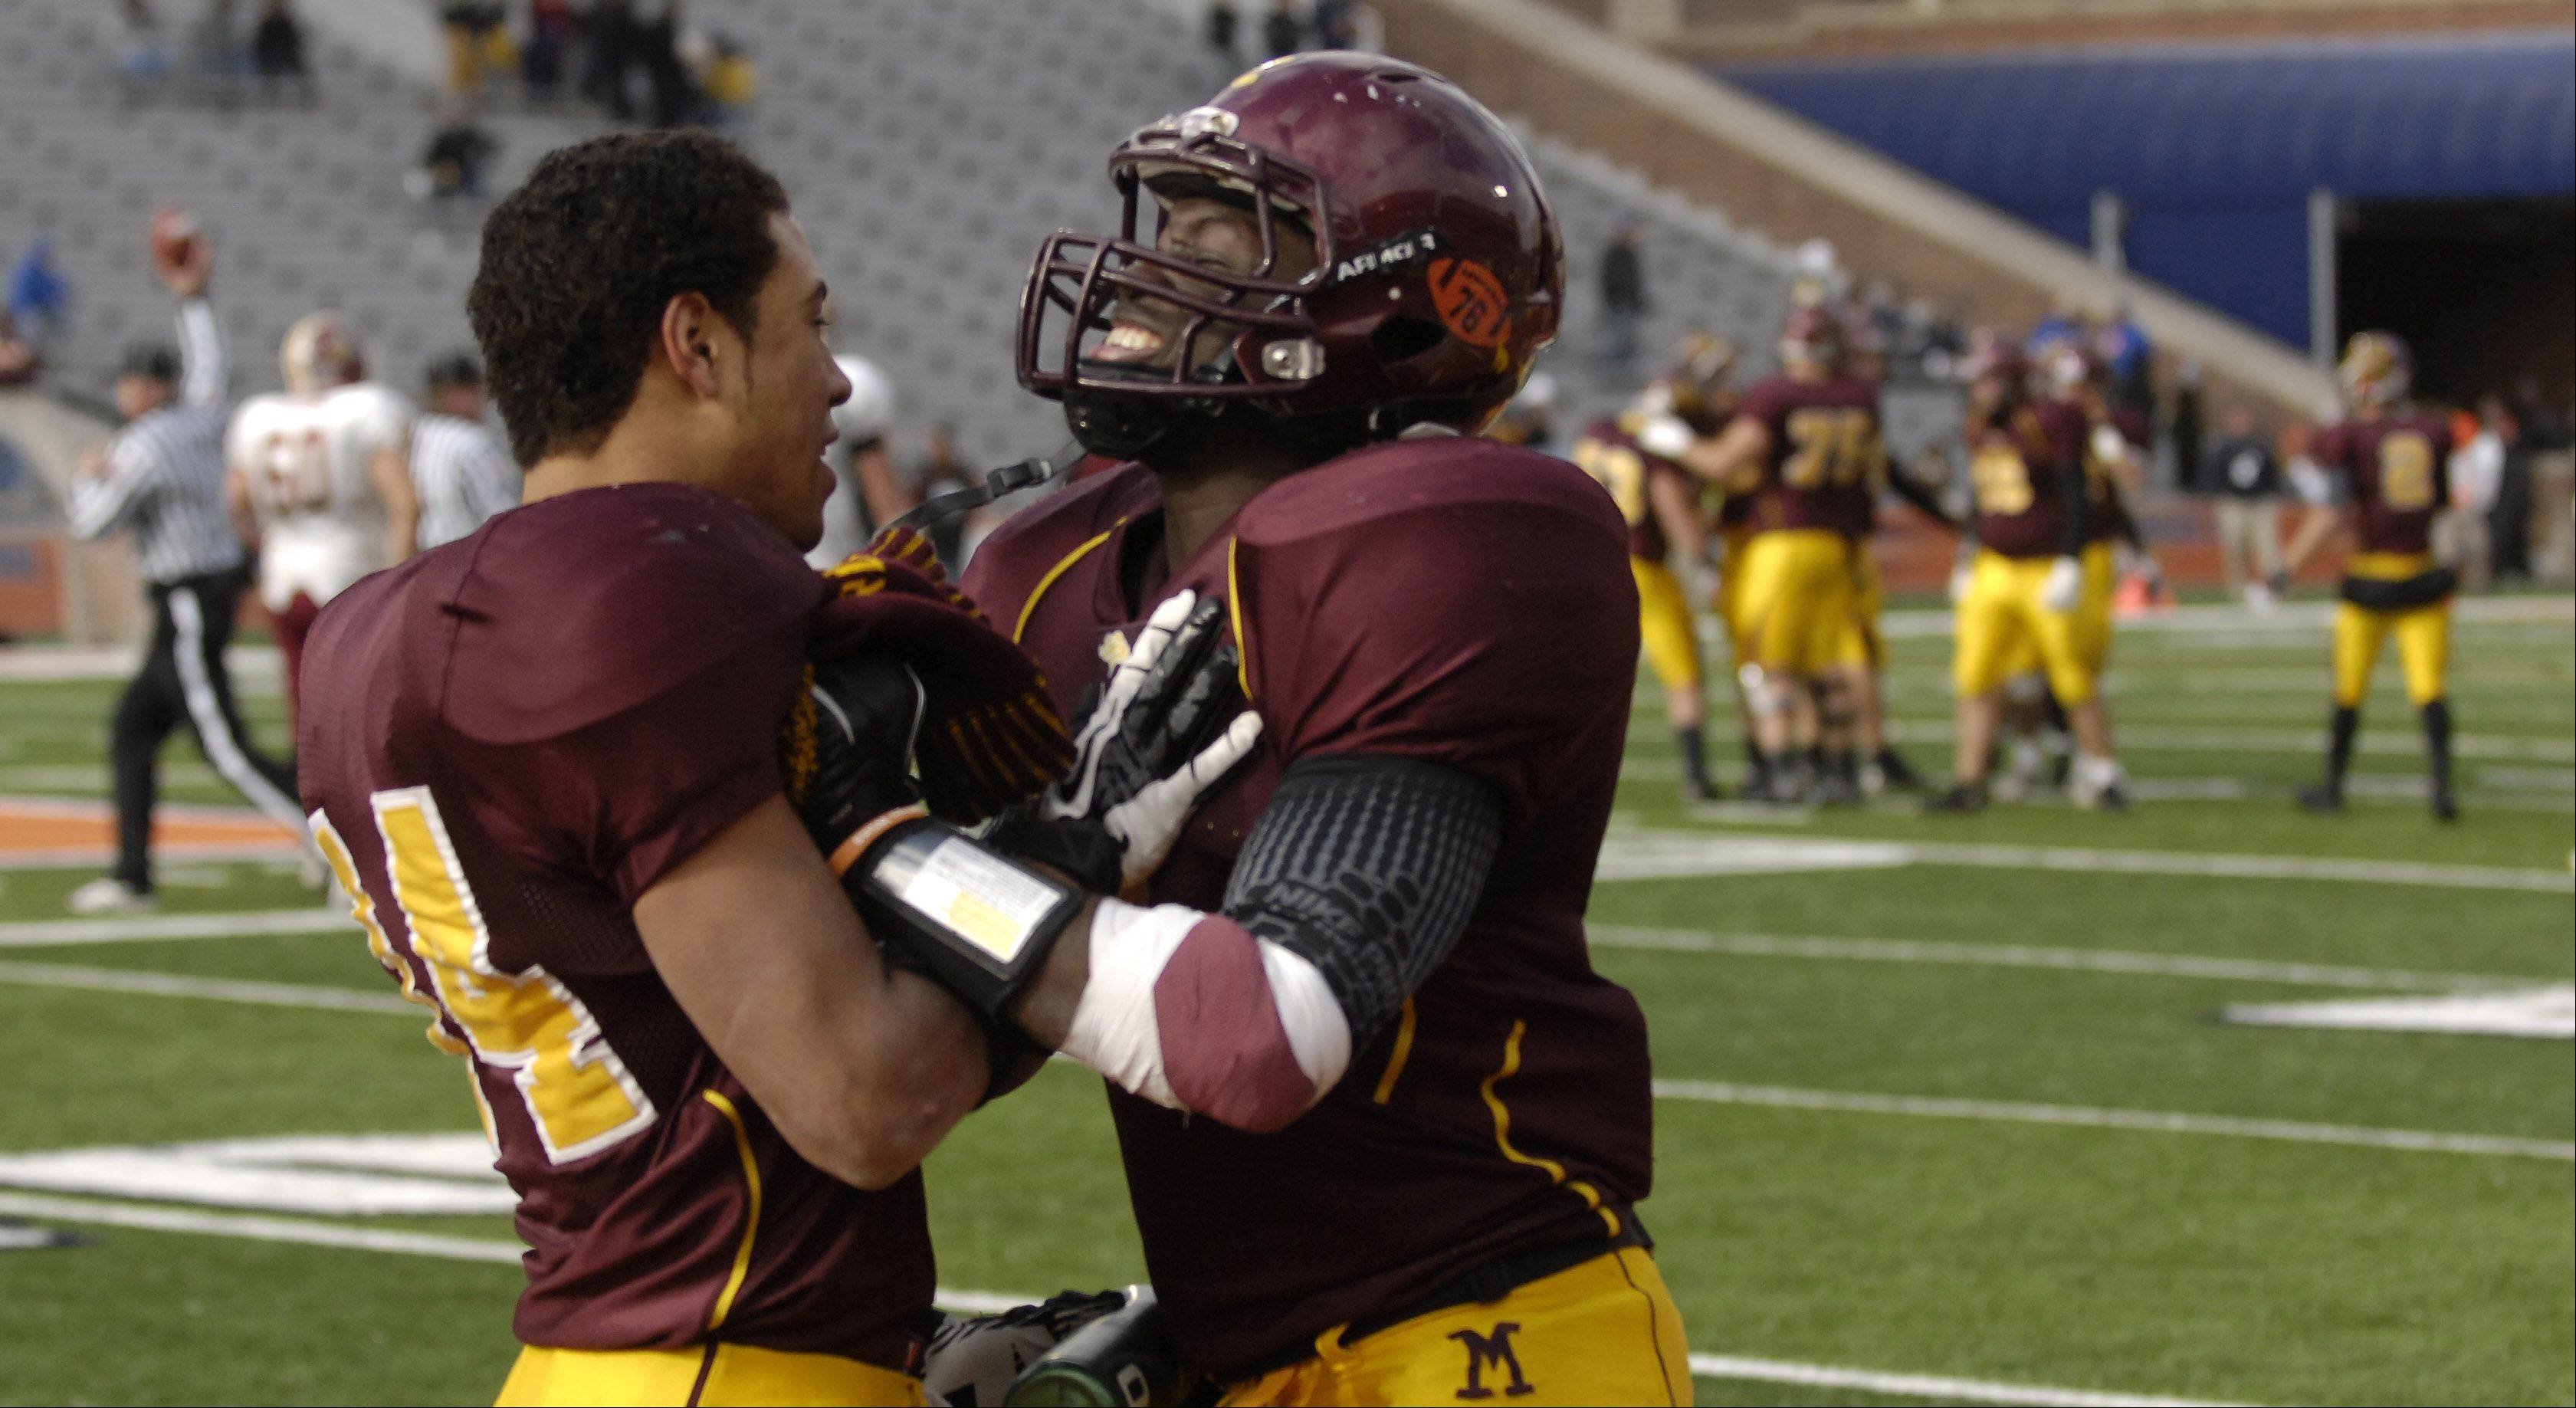 Images from the 5A state title game between Montini and Morris Saturday in Champaign.